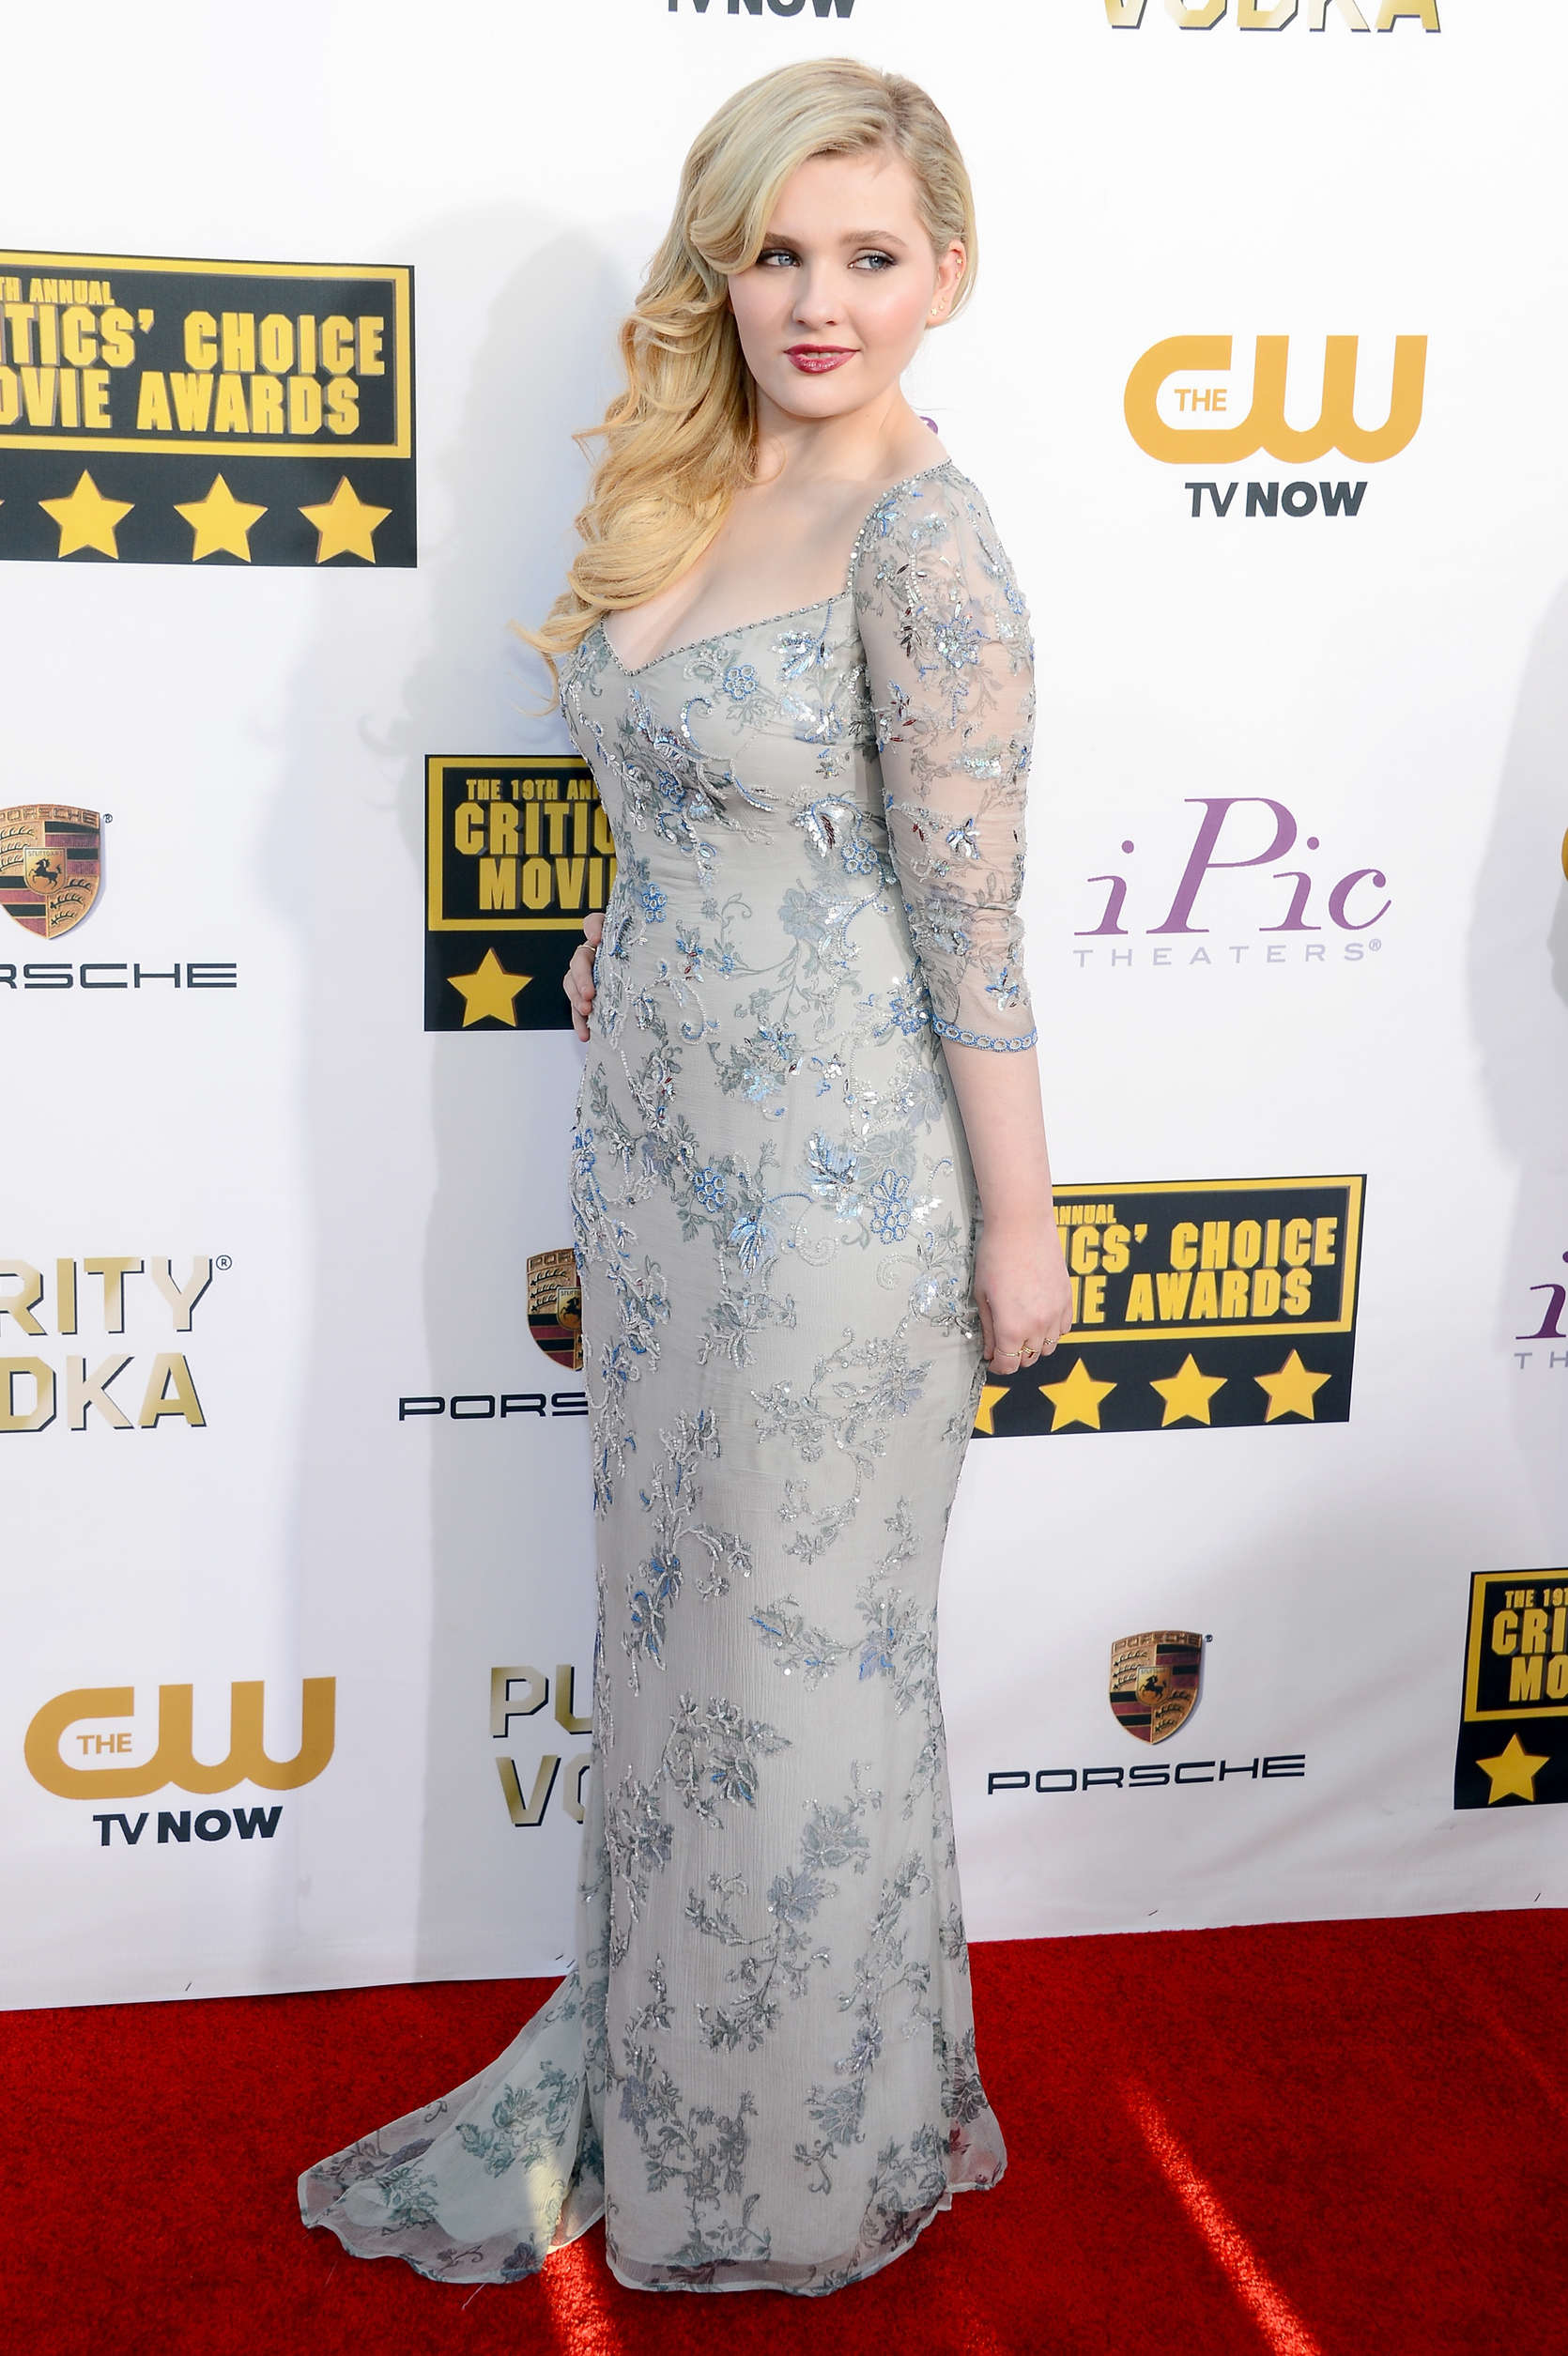 Abigail Breslin Photos: 2014 Critics Choice Movie Awards ...